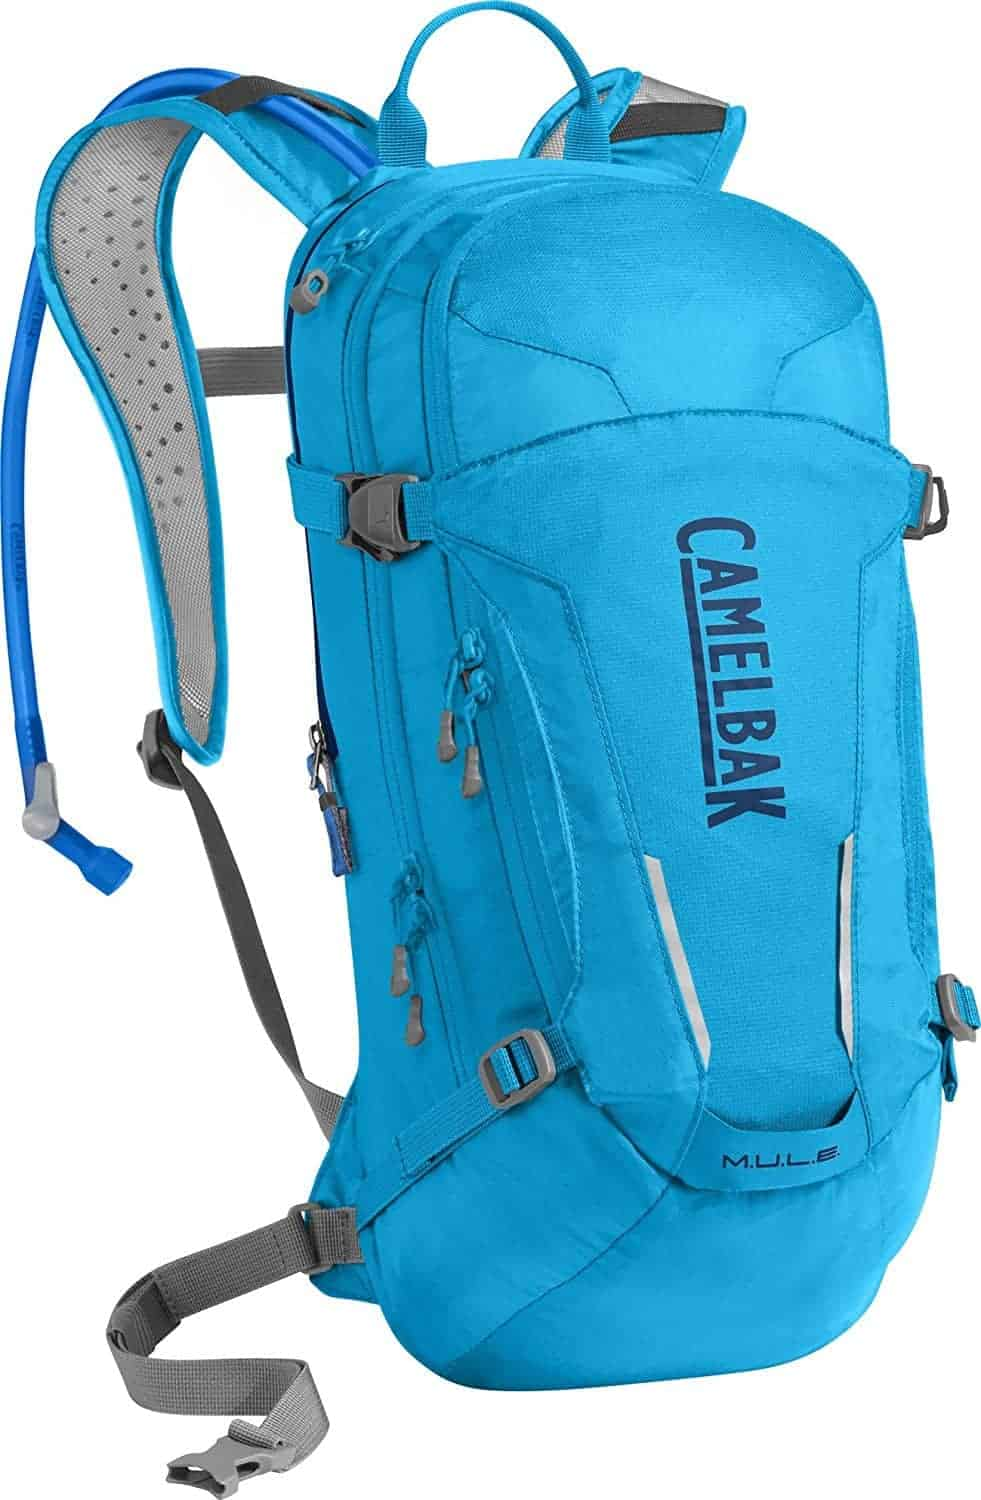 Hiking Gift Idea: hydration backpack